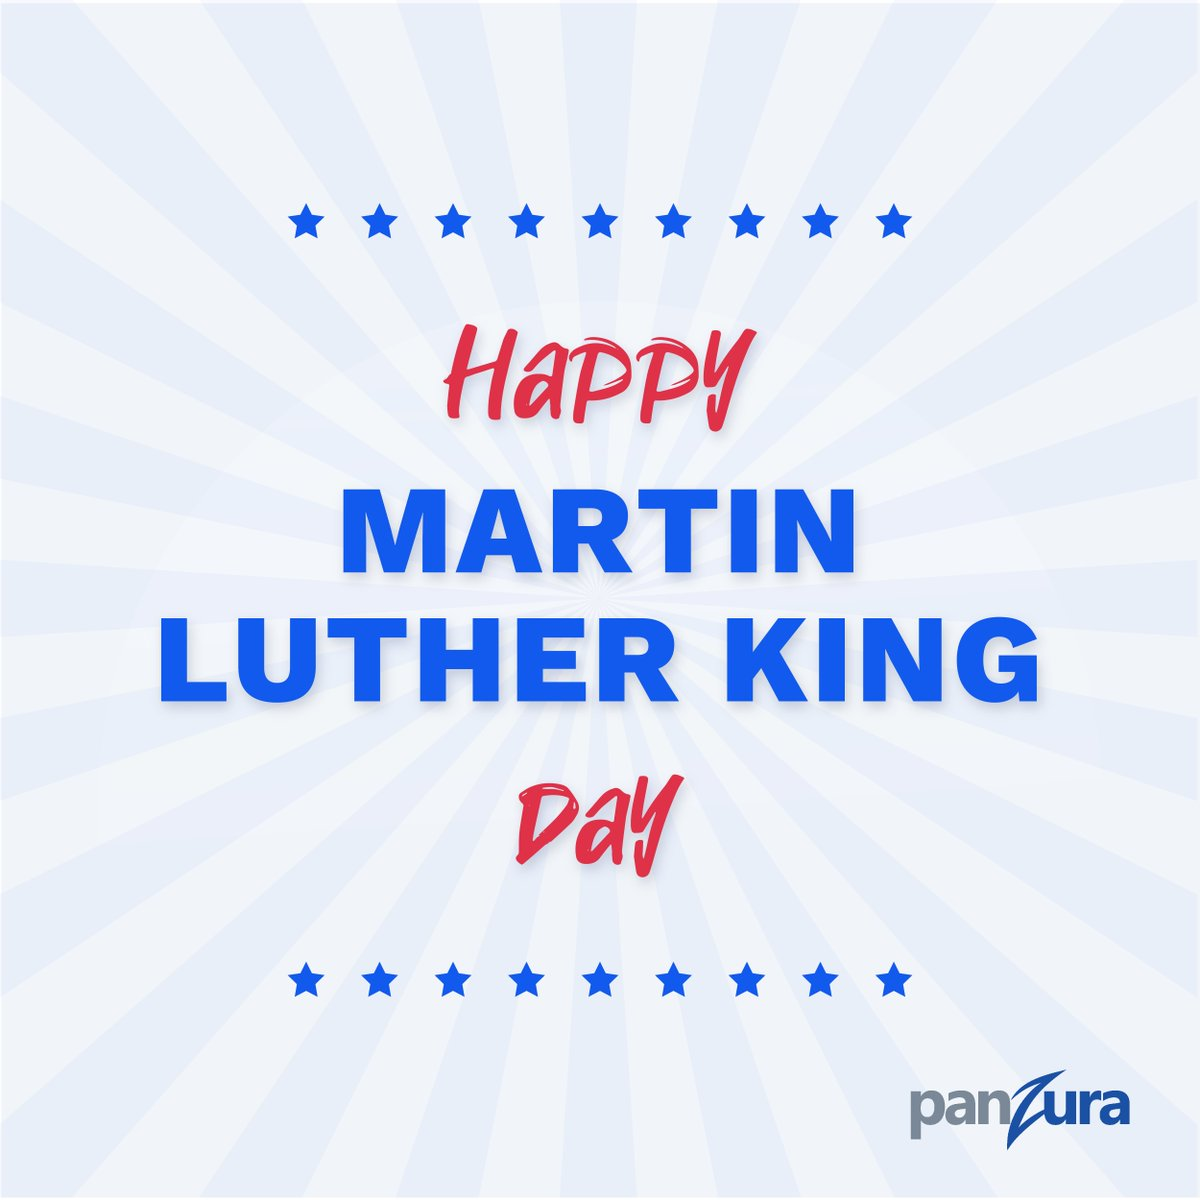 Today and every day, Panzura strives to be a company that represents diversity, equality, and inclusion for all. #MLKDay https://t.co/0g2WW4d8CC